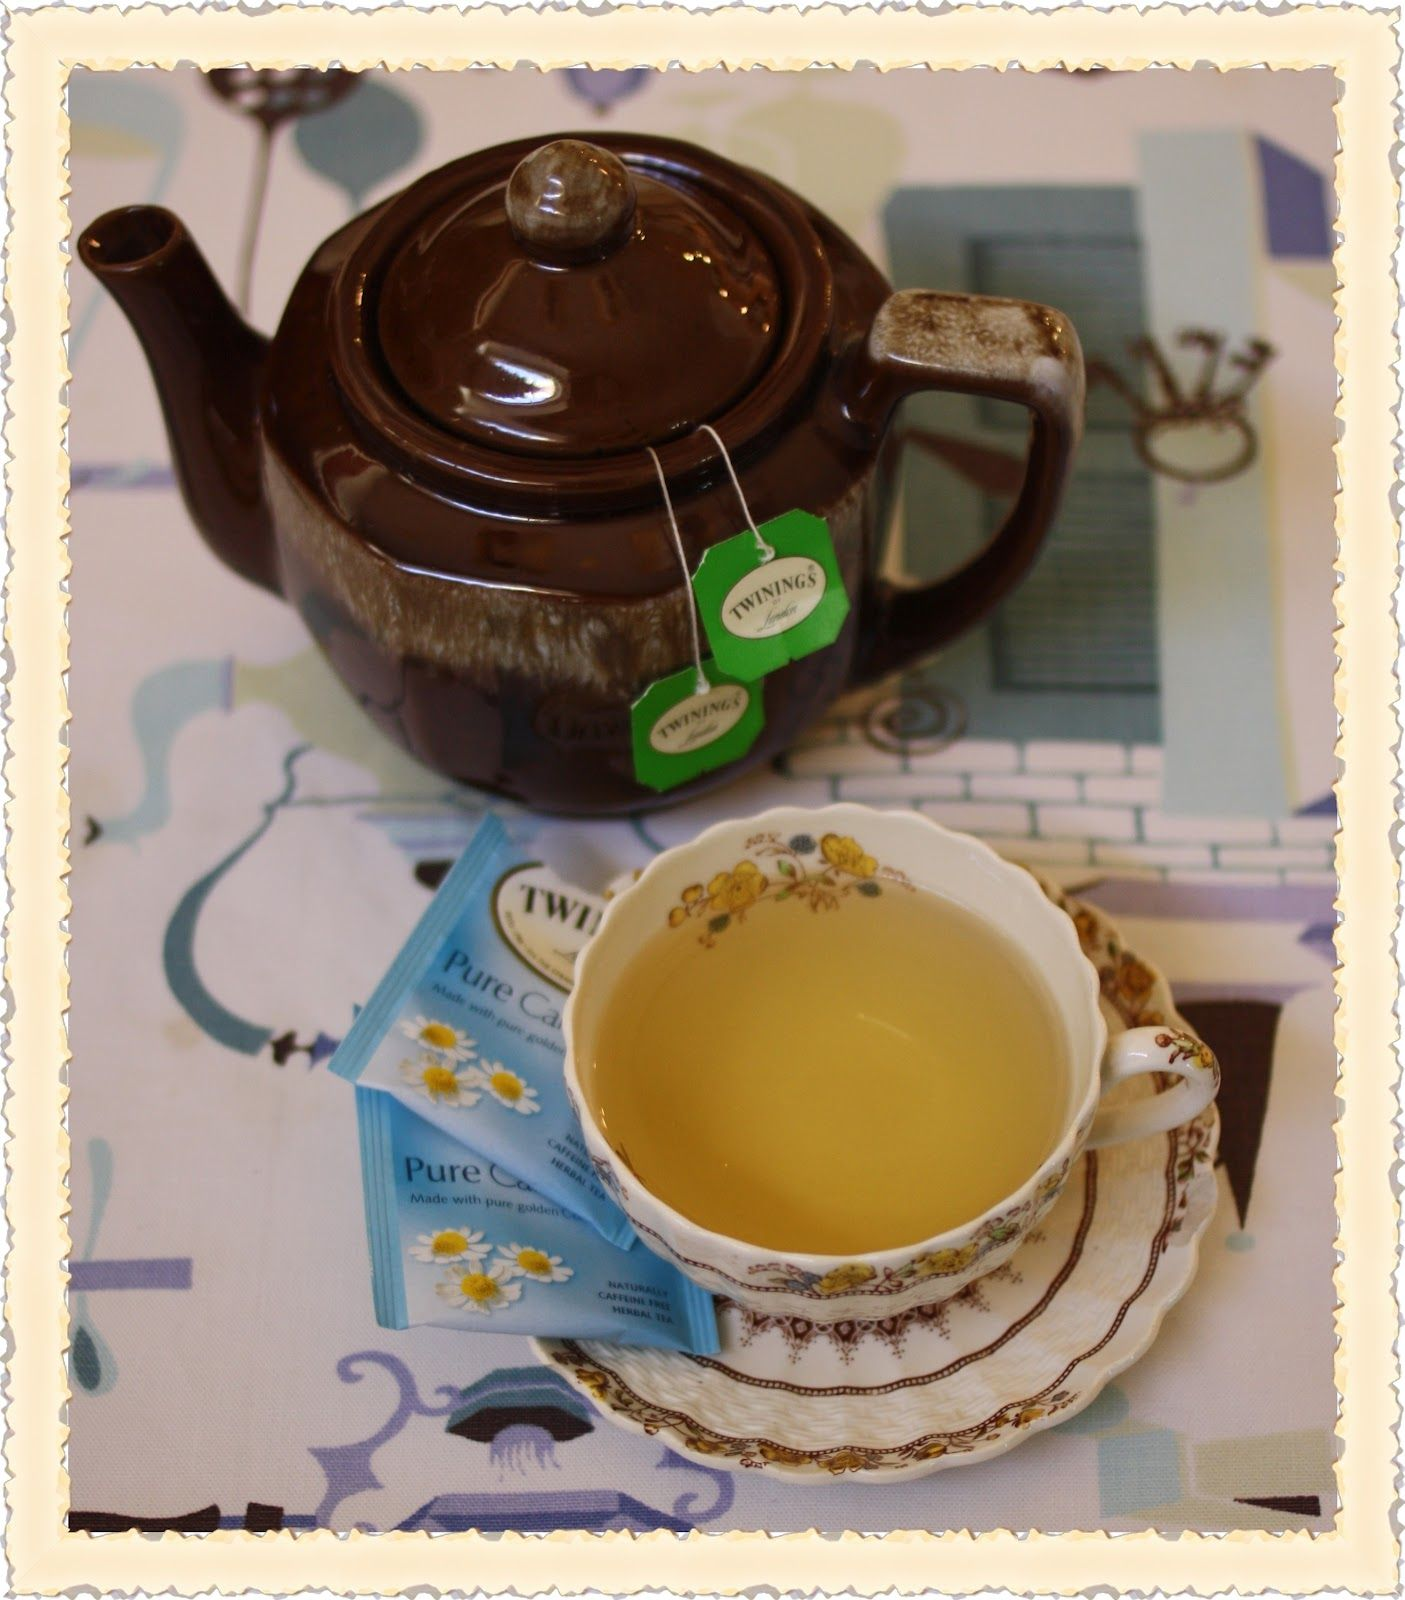 Fall tea - looks just like my Grandma's tea pot - and is that Irish Breakfast tea? Perfect!